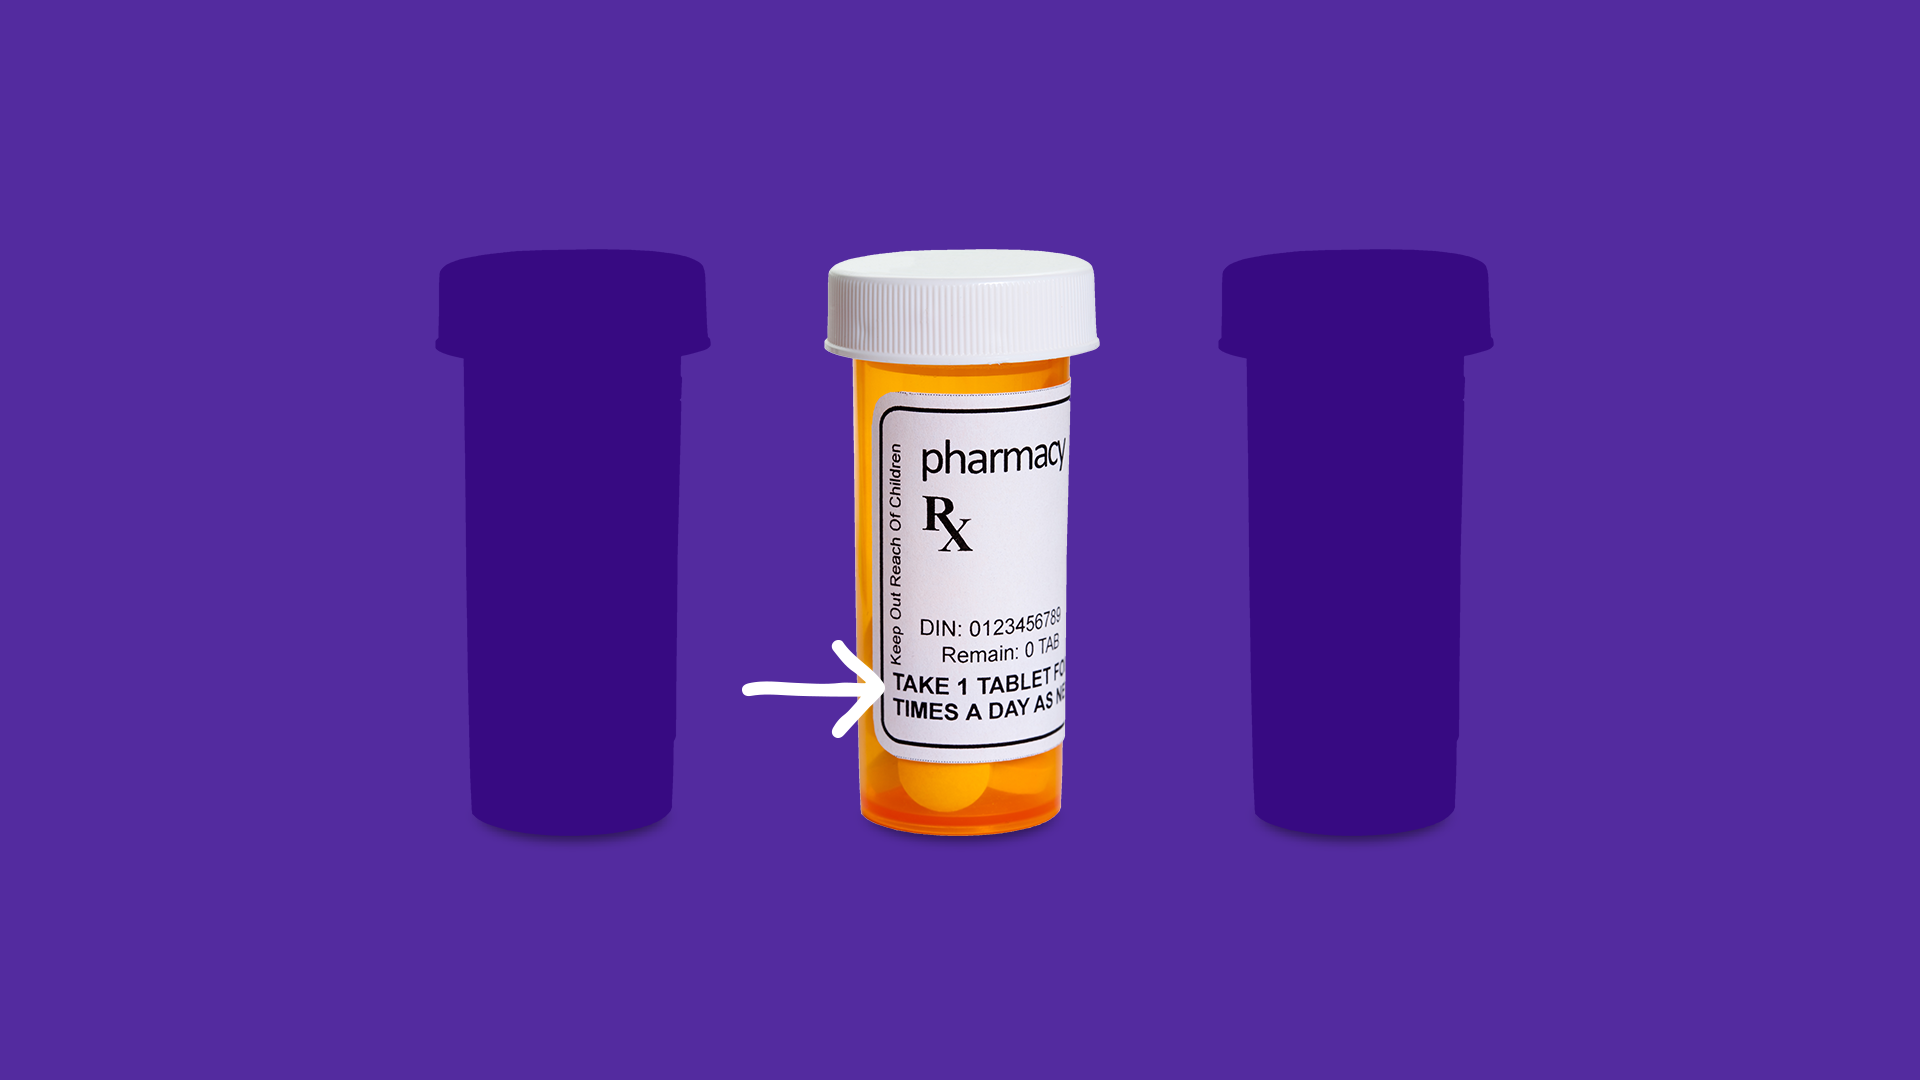 Why you should take medication as prescribed